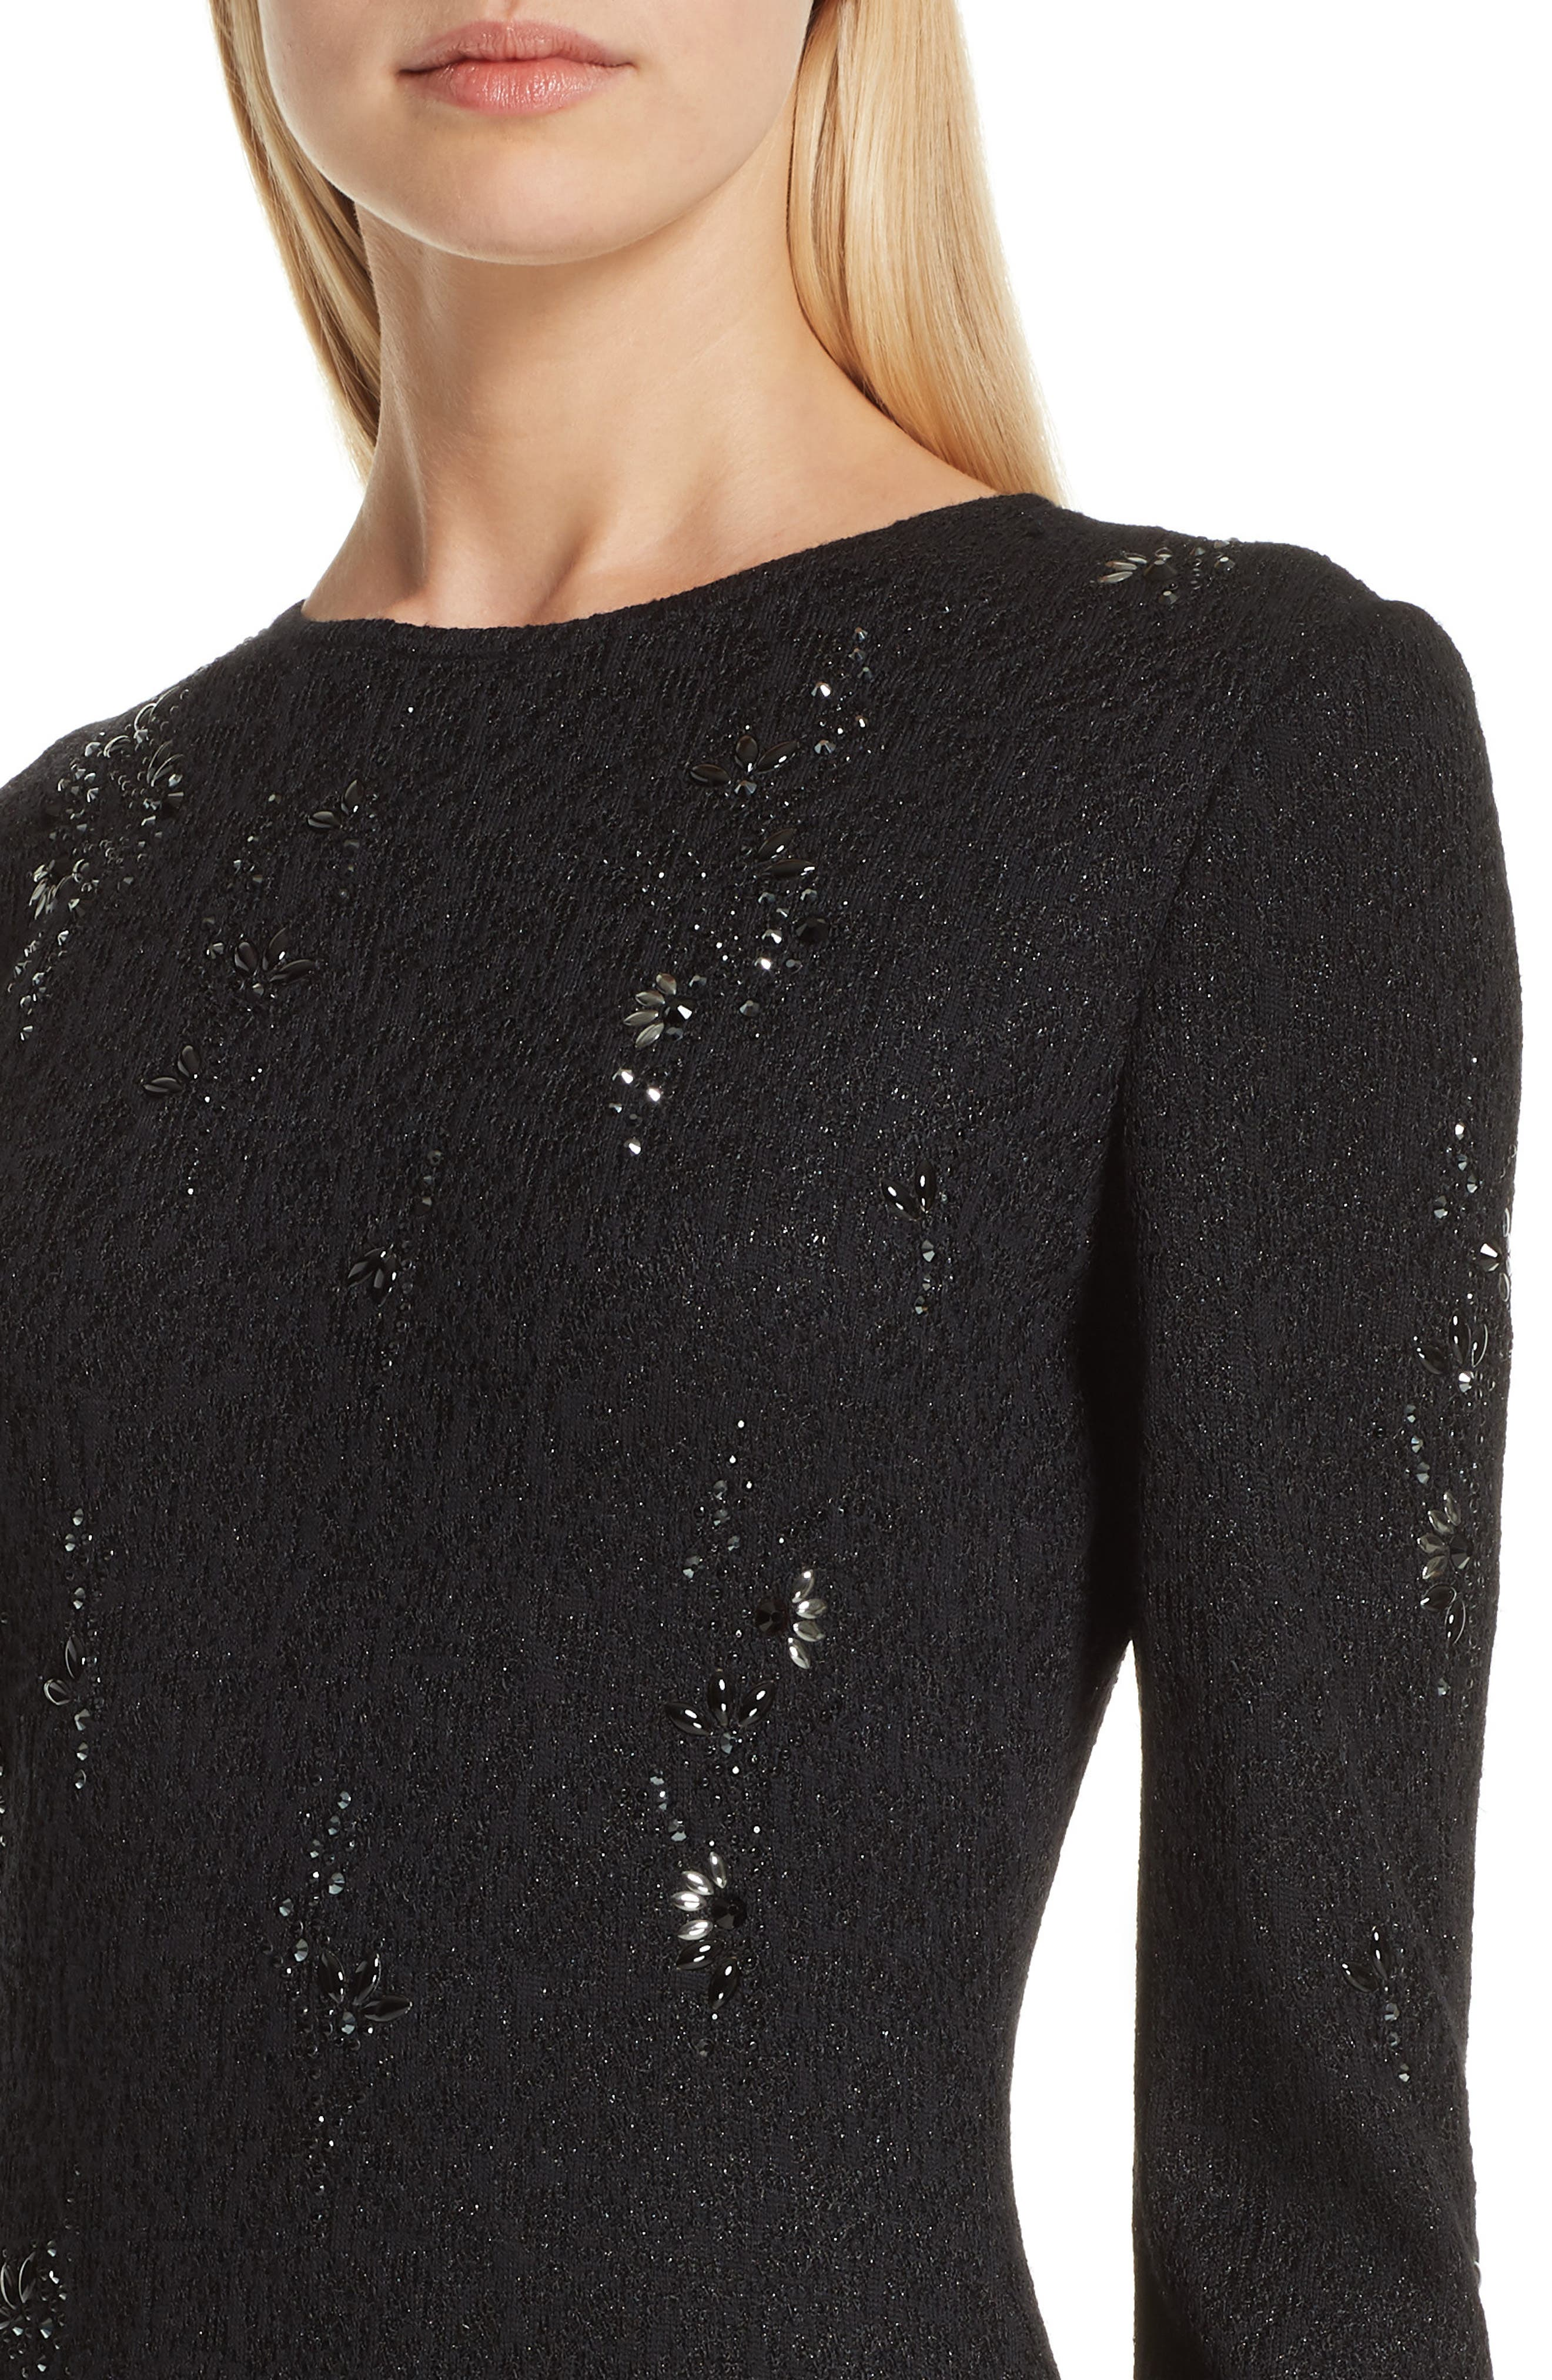 ST. JOHN COLLECTION, Lace Overlay Jacquard Knit Gown, Alternate thumbnail 4, color, CAVIAR